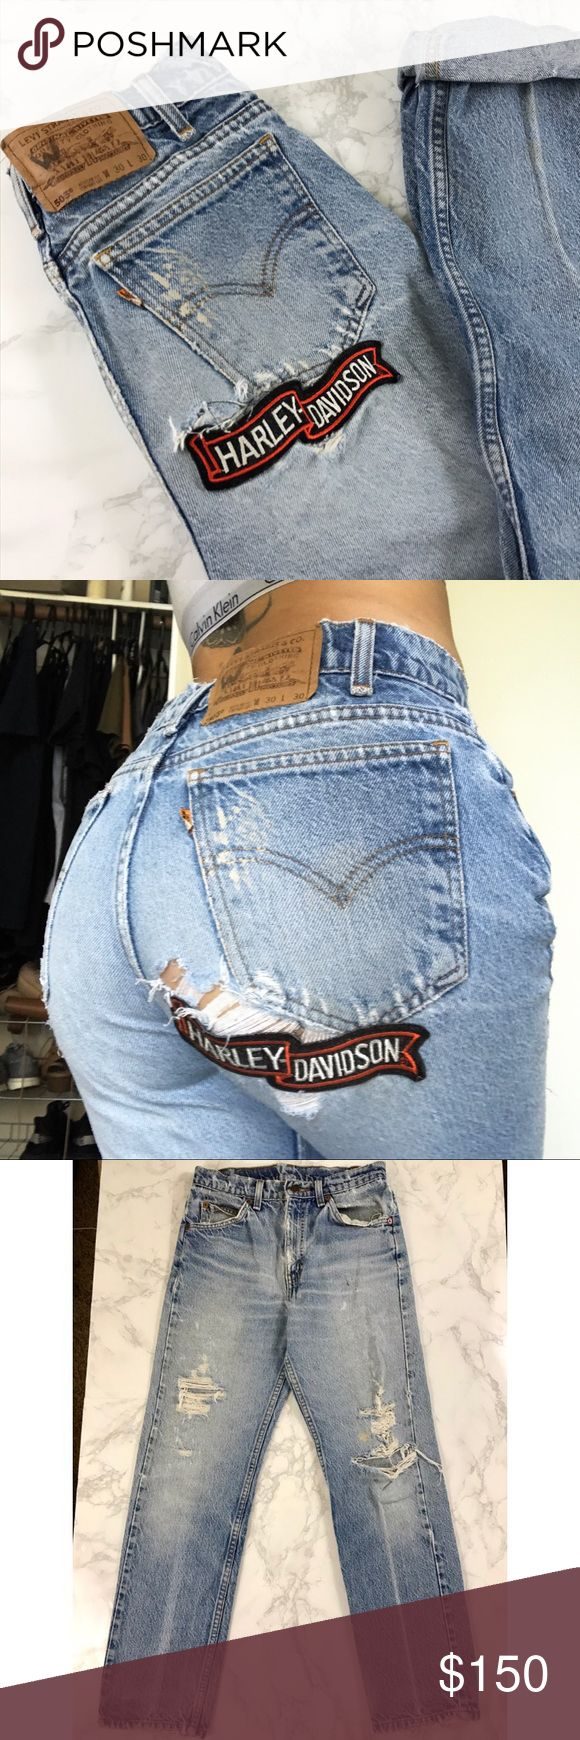 """RARE Vintage Harley Davidson Levi's Boyfriend Jean Waist: 28"""" Inseam 27.5"""" Front Rise: 10""""▪️One of a kind pair▪️Some marks on jeans as shown in photos but overall in great condition ▪️ Levi's Jeans Boyfriend"""